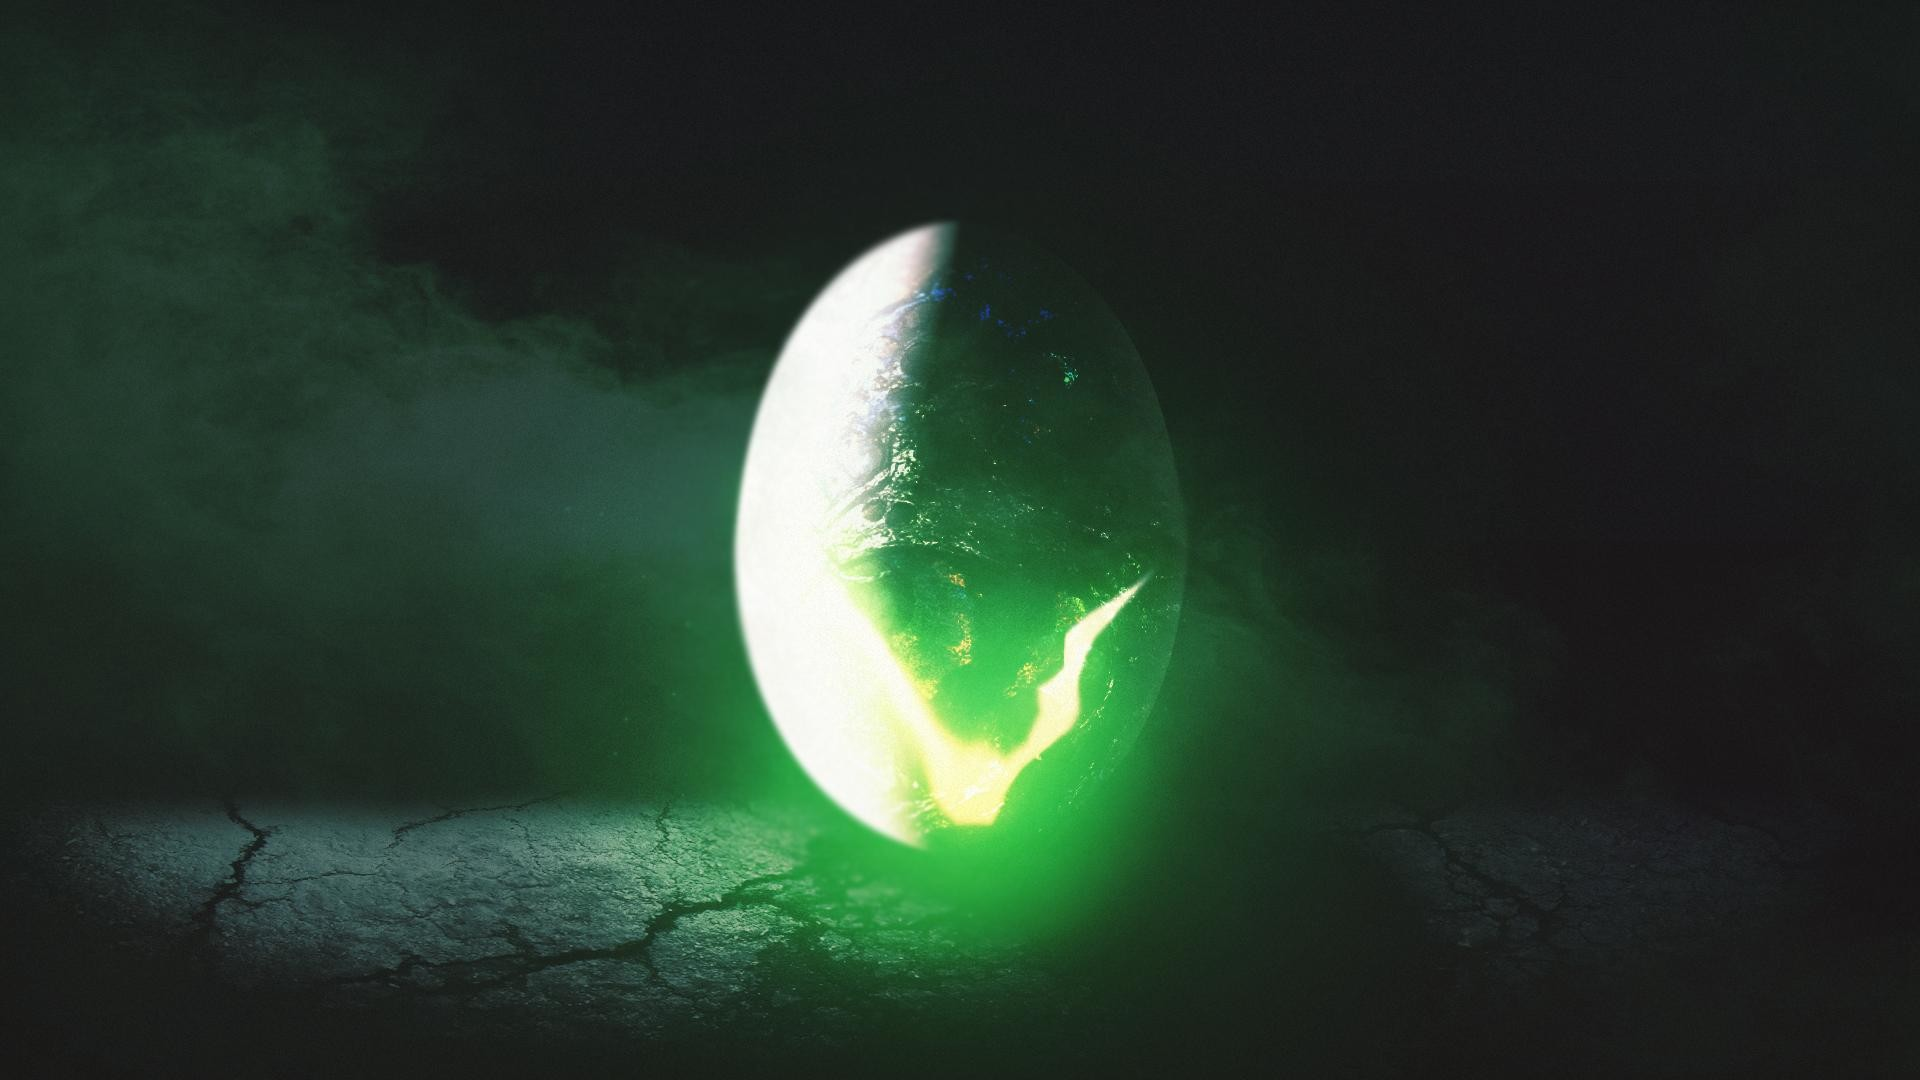 1920x1080 Alien egg thing desktop wallpaper. AI + PS + random images and textures.  Hope someone likes it.